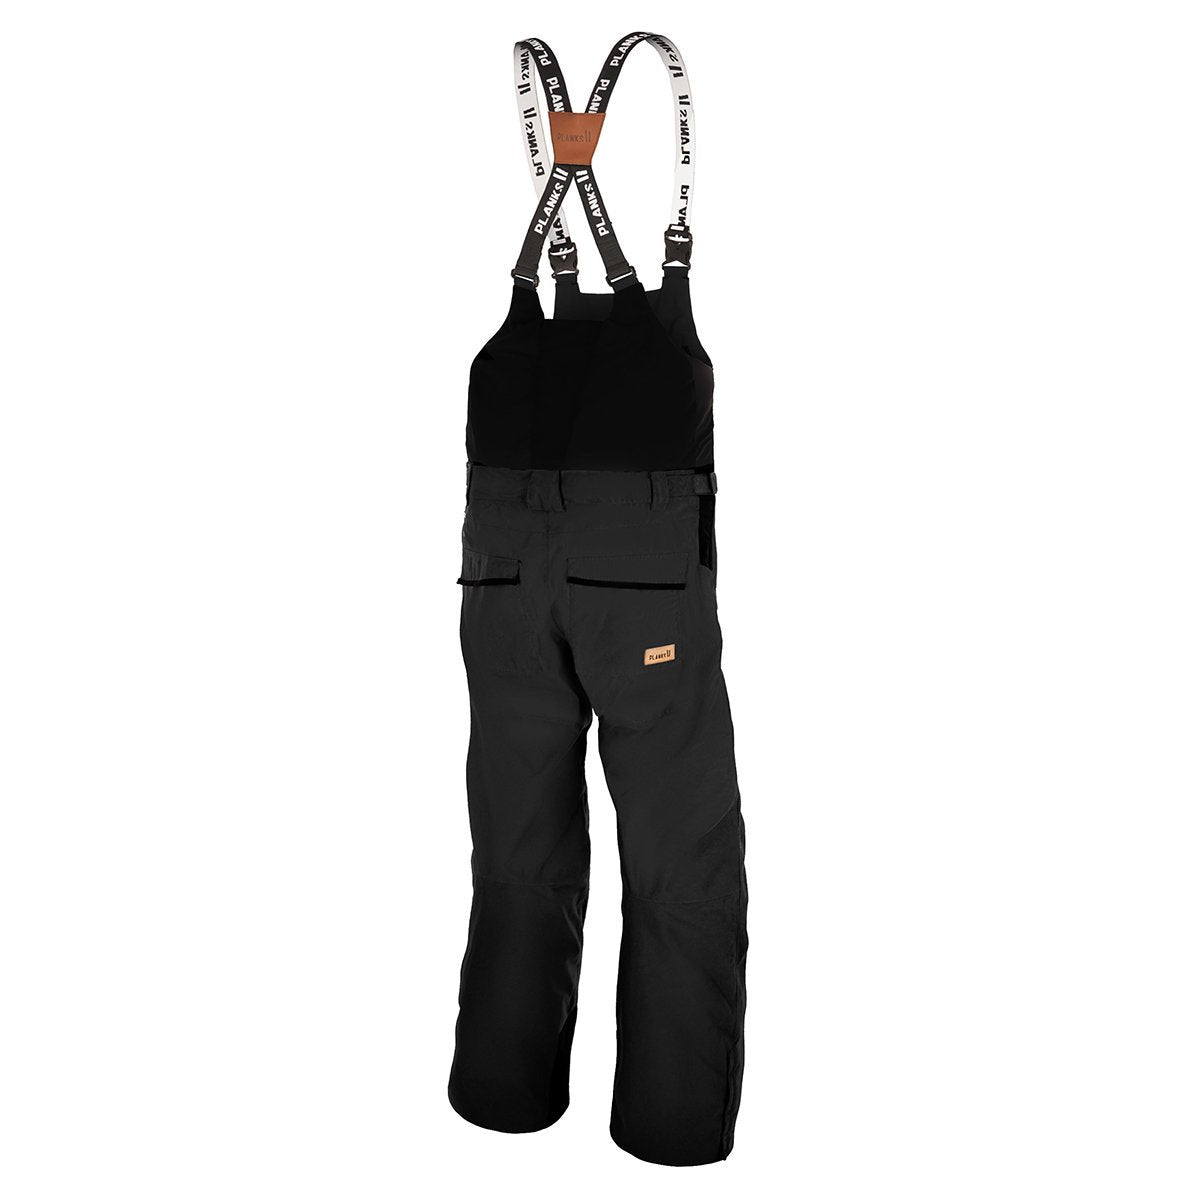 UO-TPB105A-XS, Planks, The People's Bib, Black, Ski Salopette | Snowboard Bib Pant